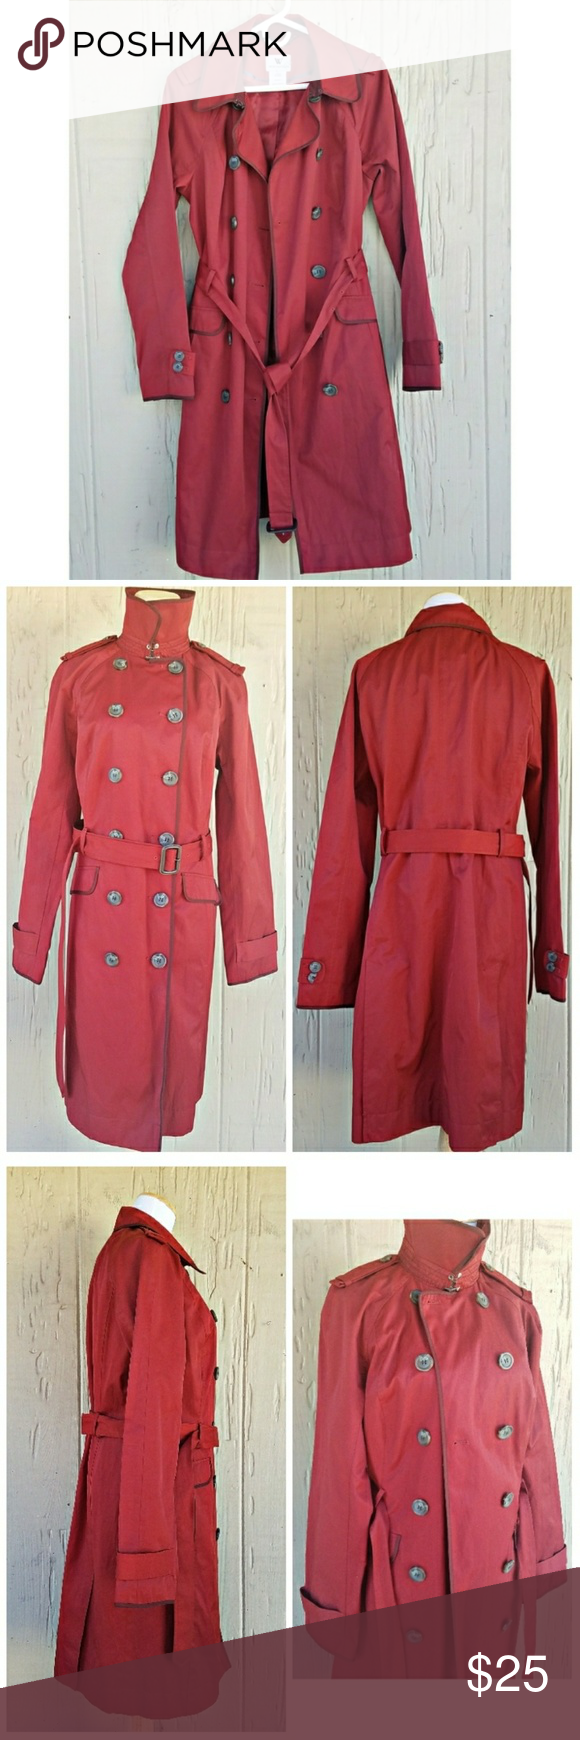 "Worthington Trench Coat Worthington lined, double breasted trench coat with waist belt and 2 front pockets.  ⚠Button broken in half on left sleeve as pictured in last photo⚠  📐DIMENSIONS📐 (approximate) Sleeve: 30"" Chest: 20.5"" Length (back): 39.25""              (Front): 37"" Belt: 70"" (to buckle) __________________________________ Outer Shell: 57% Cotton                      43% Polyester Lining: 100% Polyester  Color(s): Burgundy Worthington Jackets & Coats Trench Coats"